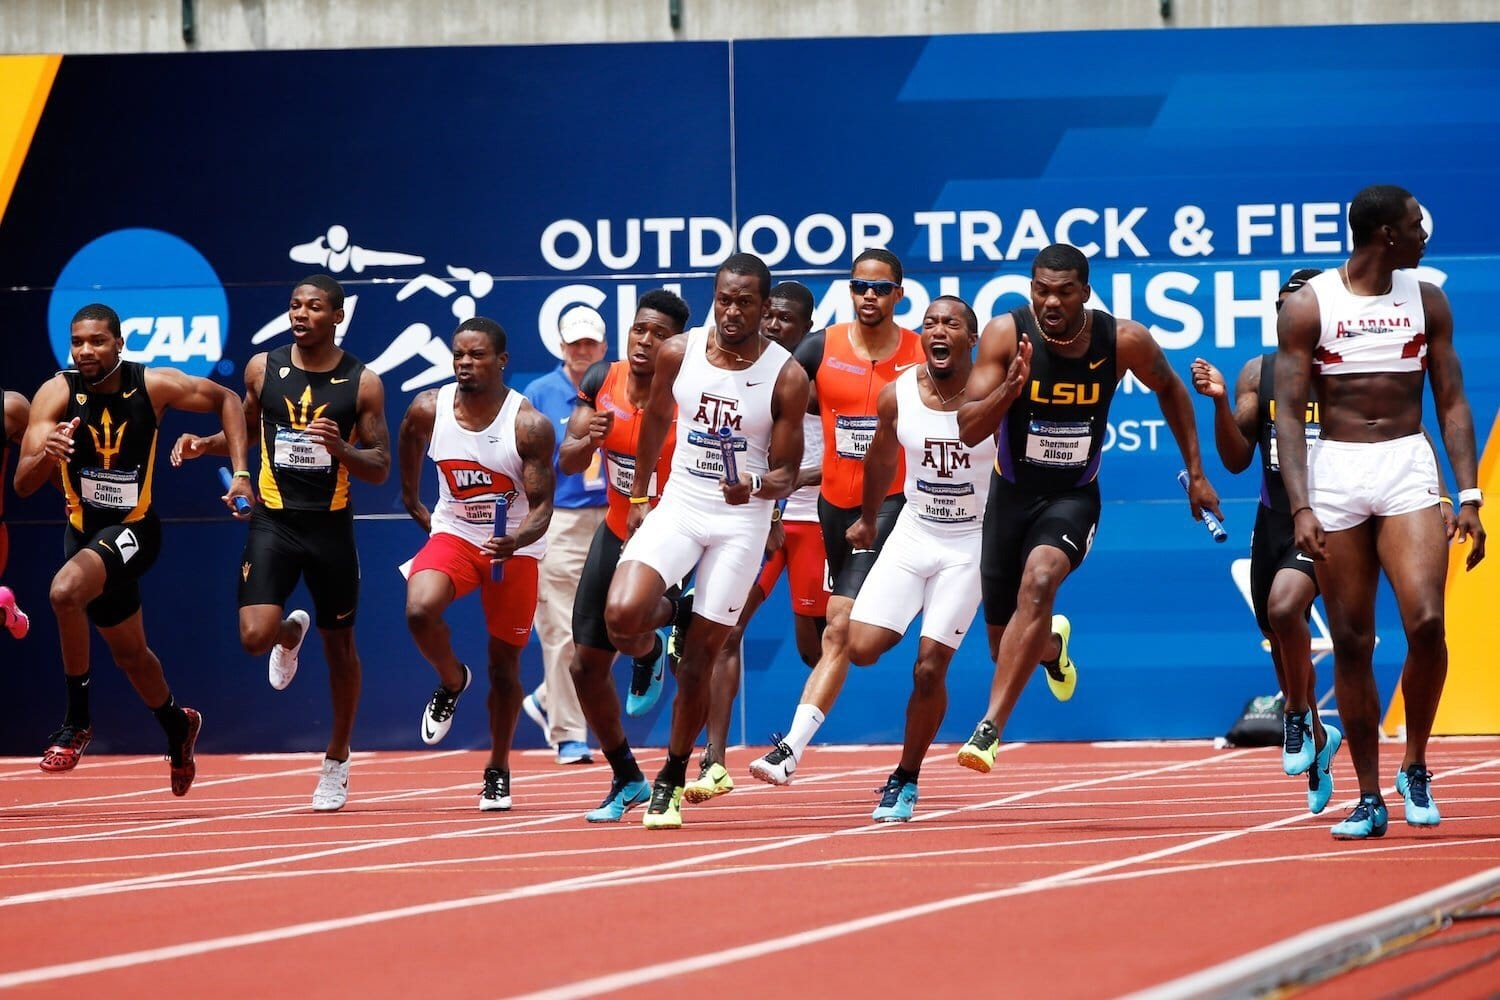 The Best NCAA DI Outdoor Men's Track & Field Team 2018